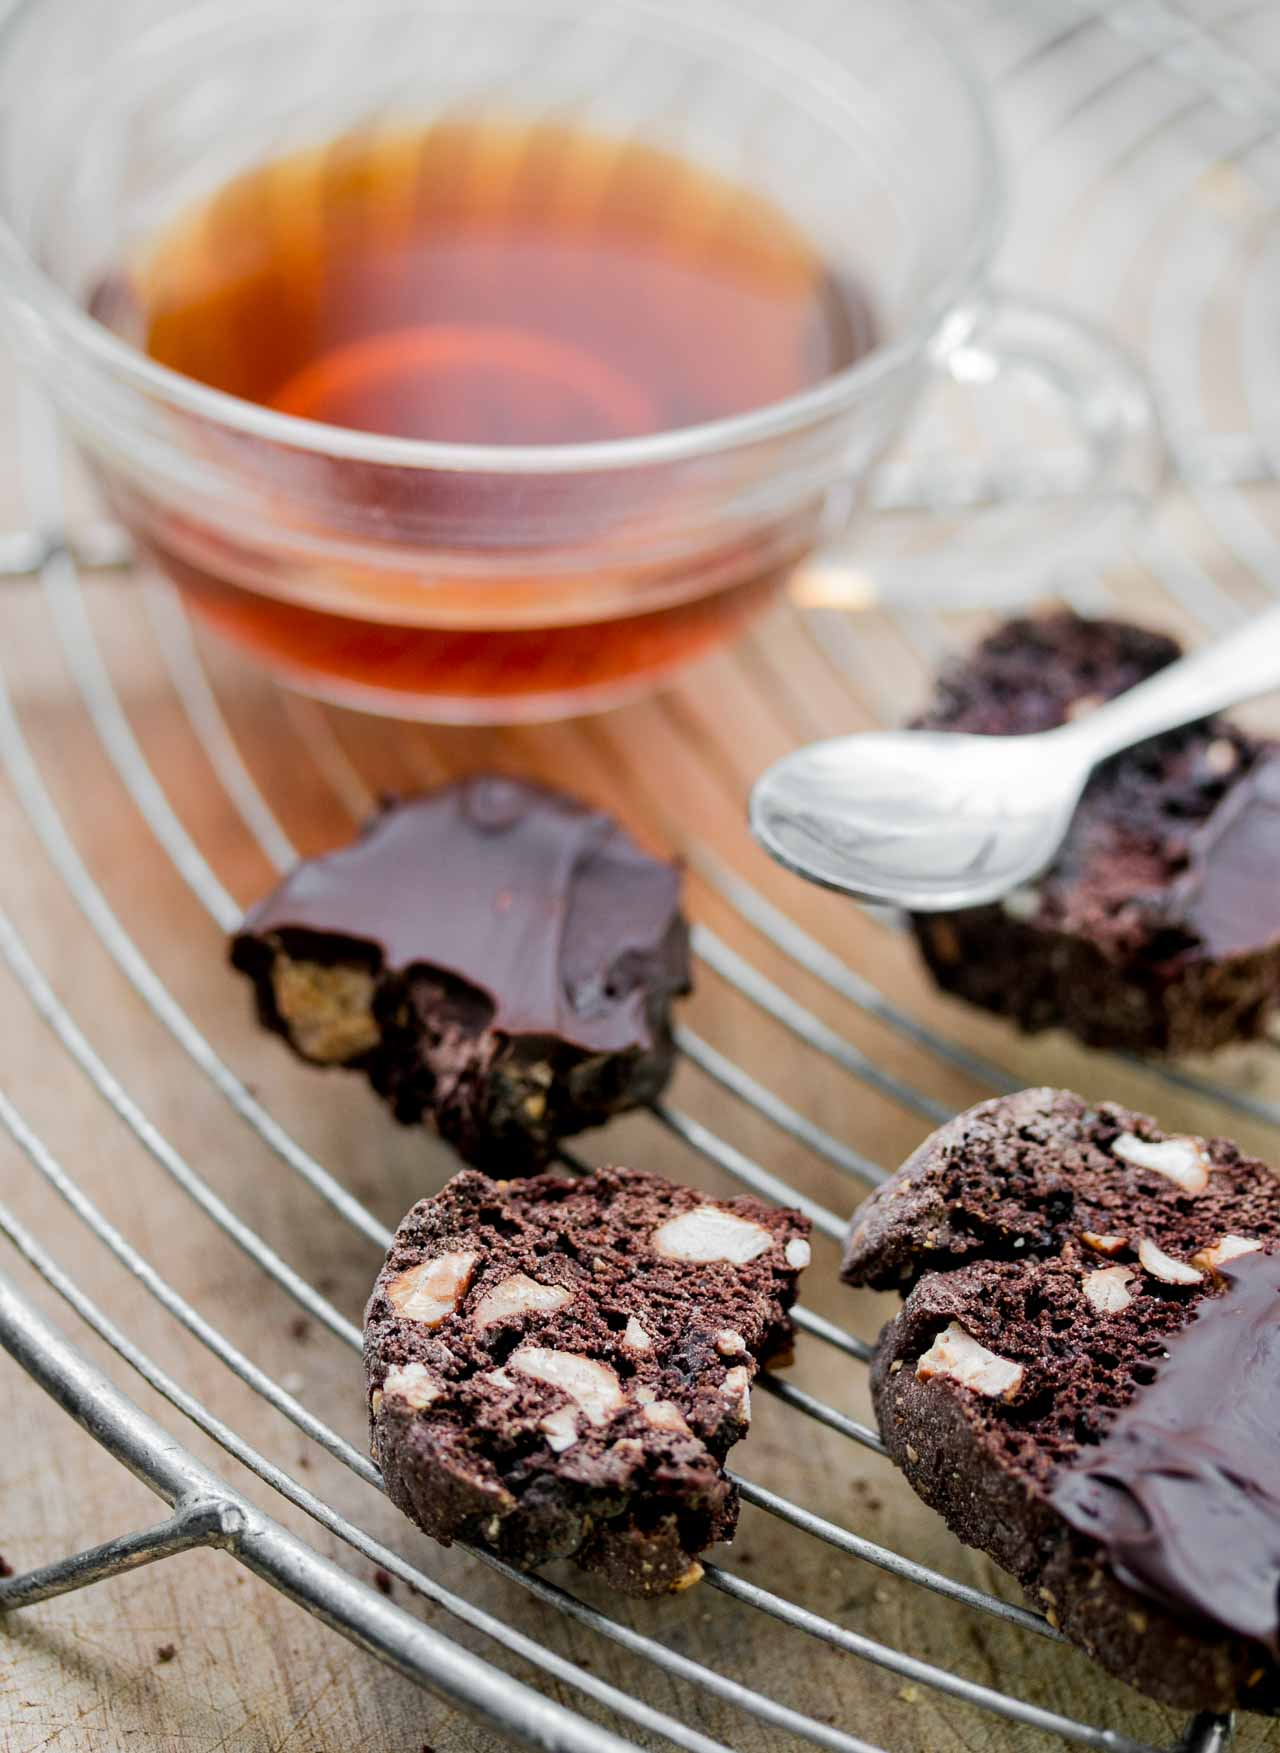 Chocolate Biscotti Recipe David Lebovitz - Sliced chocolate is finally here and we know our life will never be the same again